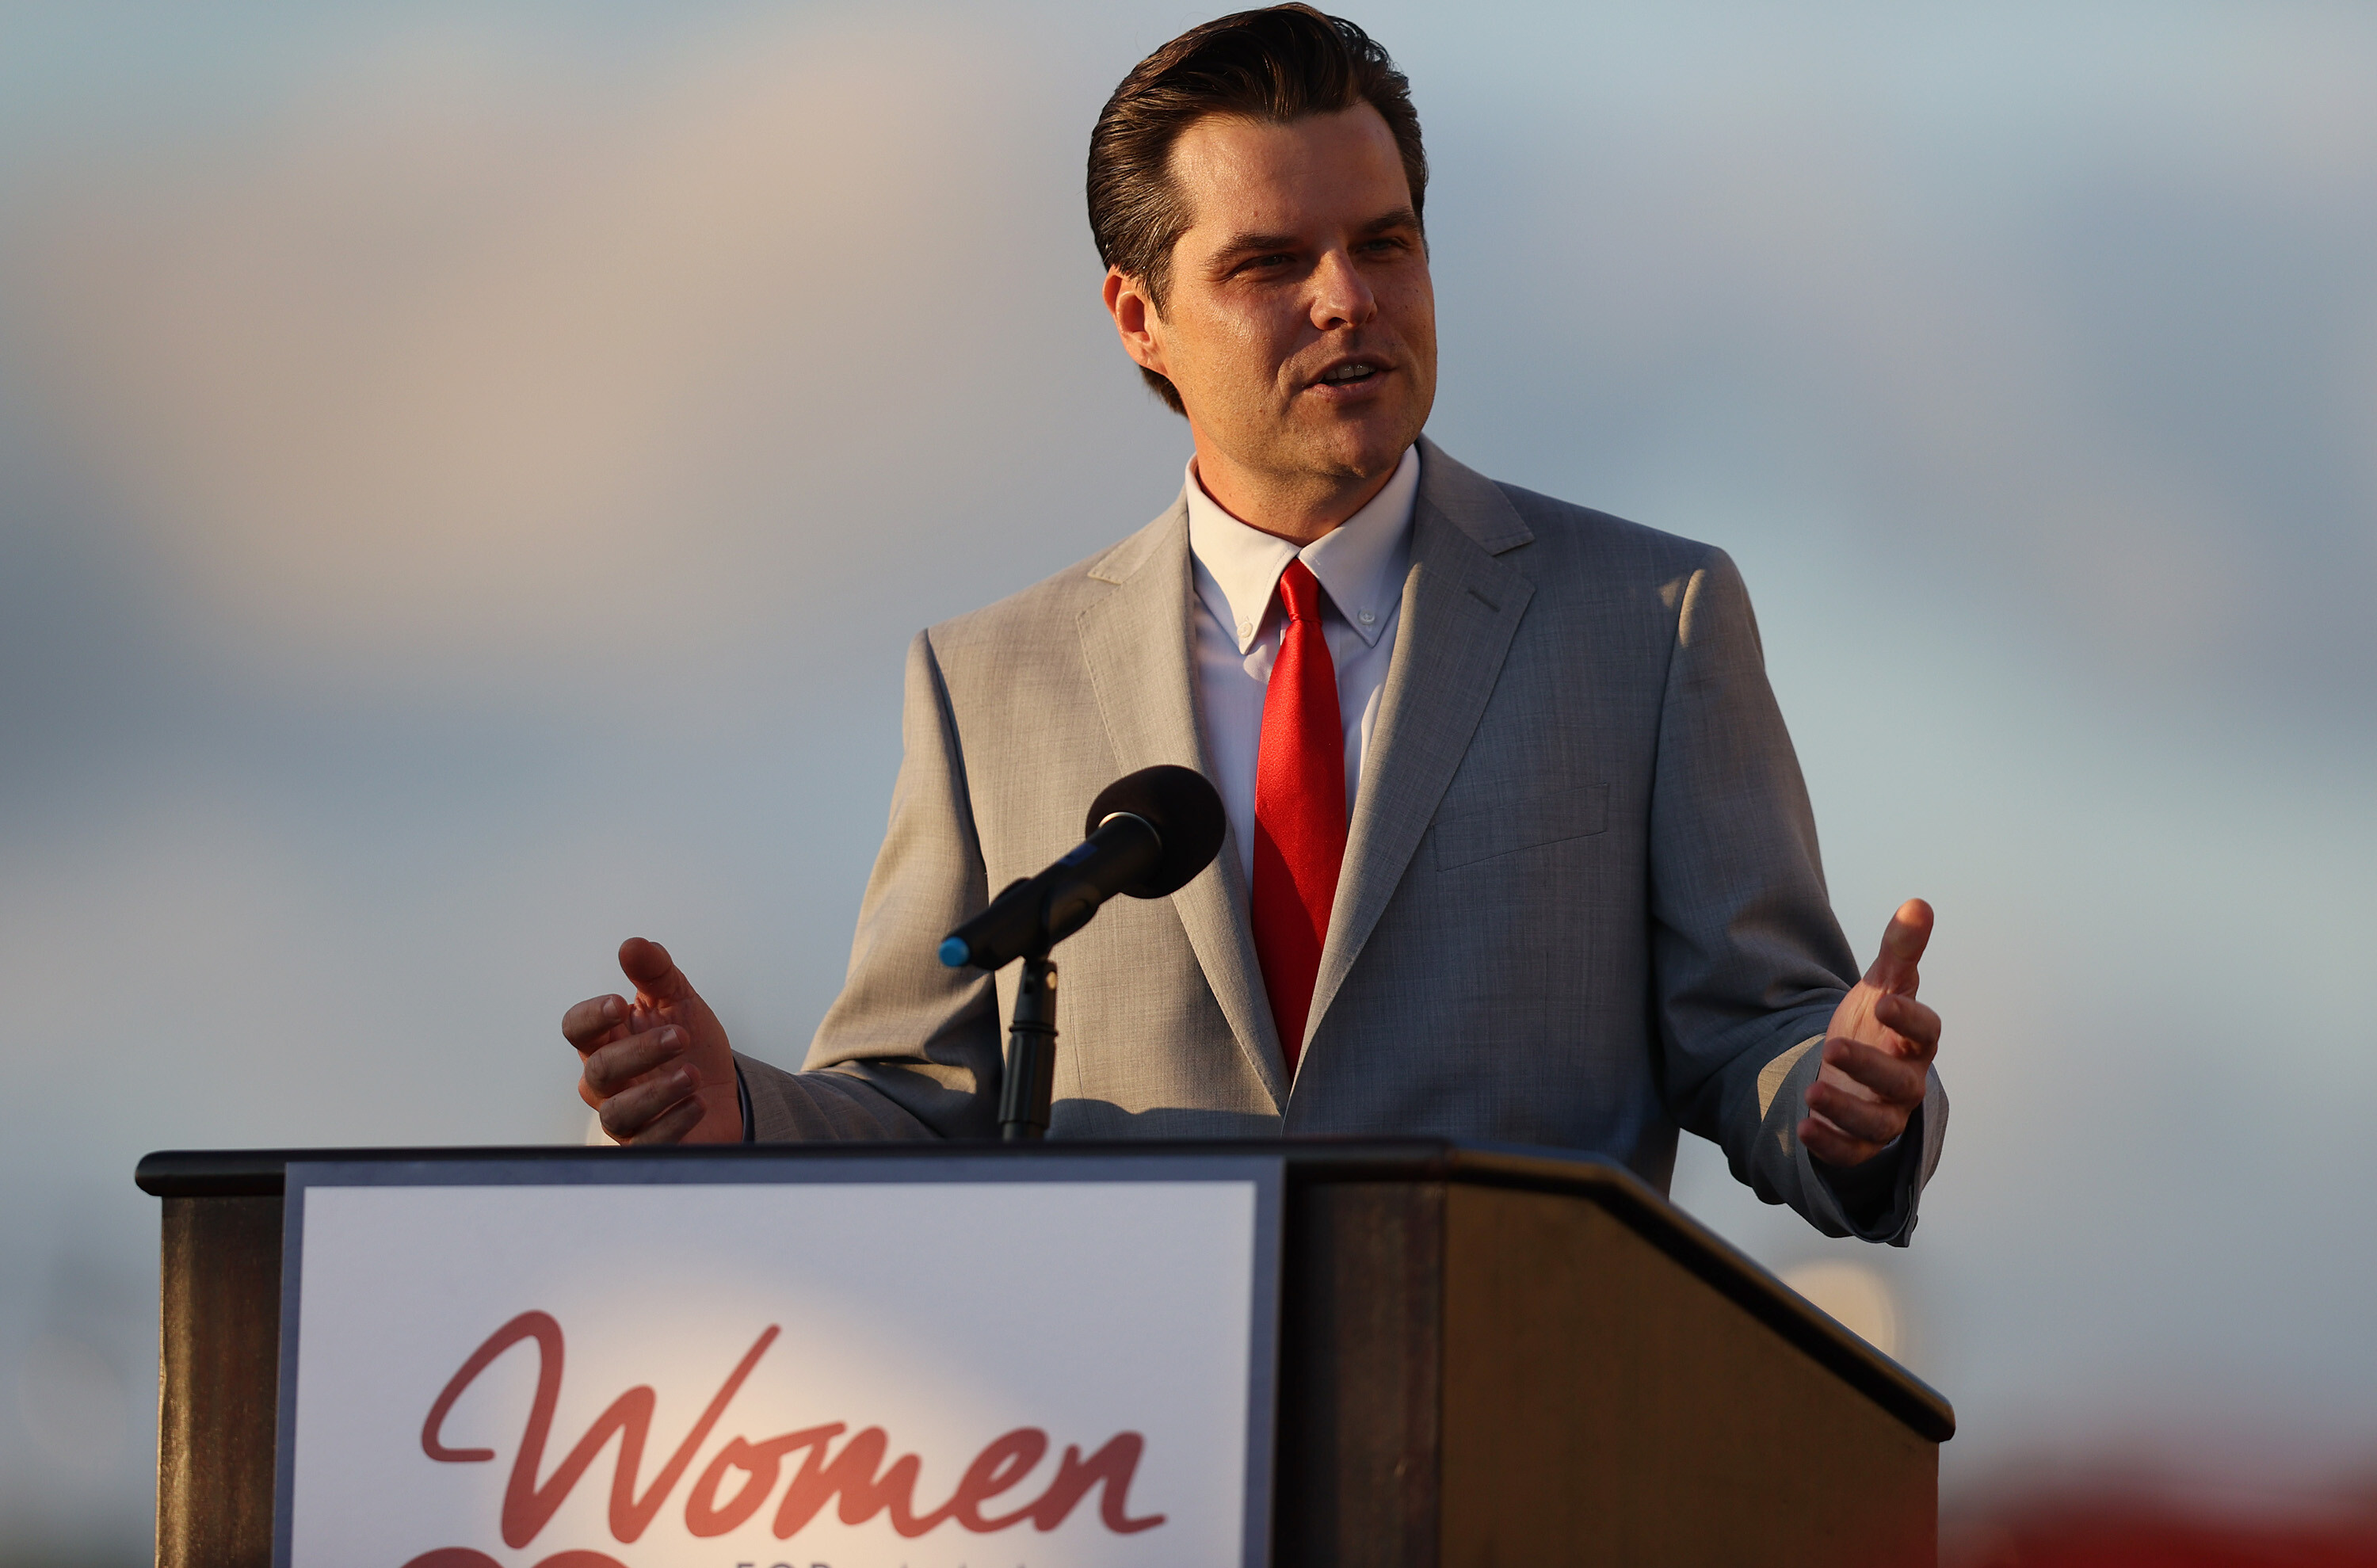 Florida man charged with attempting to defraud Rep. Matt Gaetz's family over sex-crimes investigation